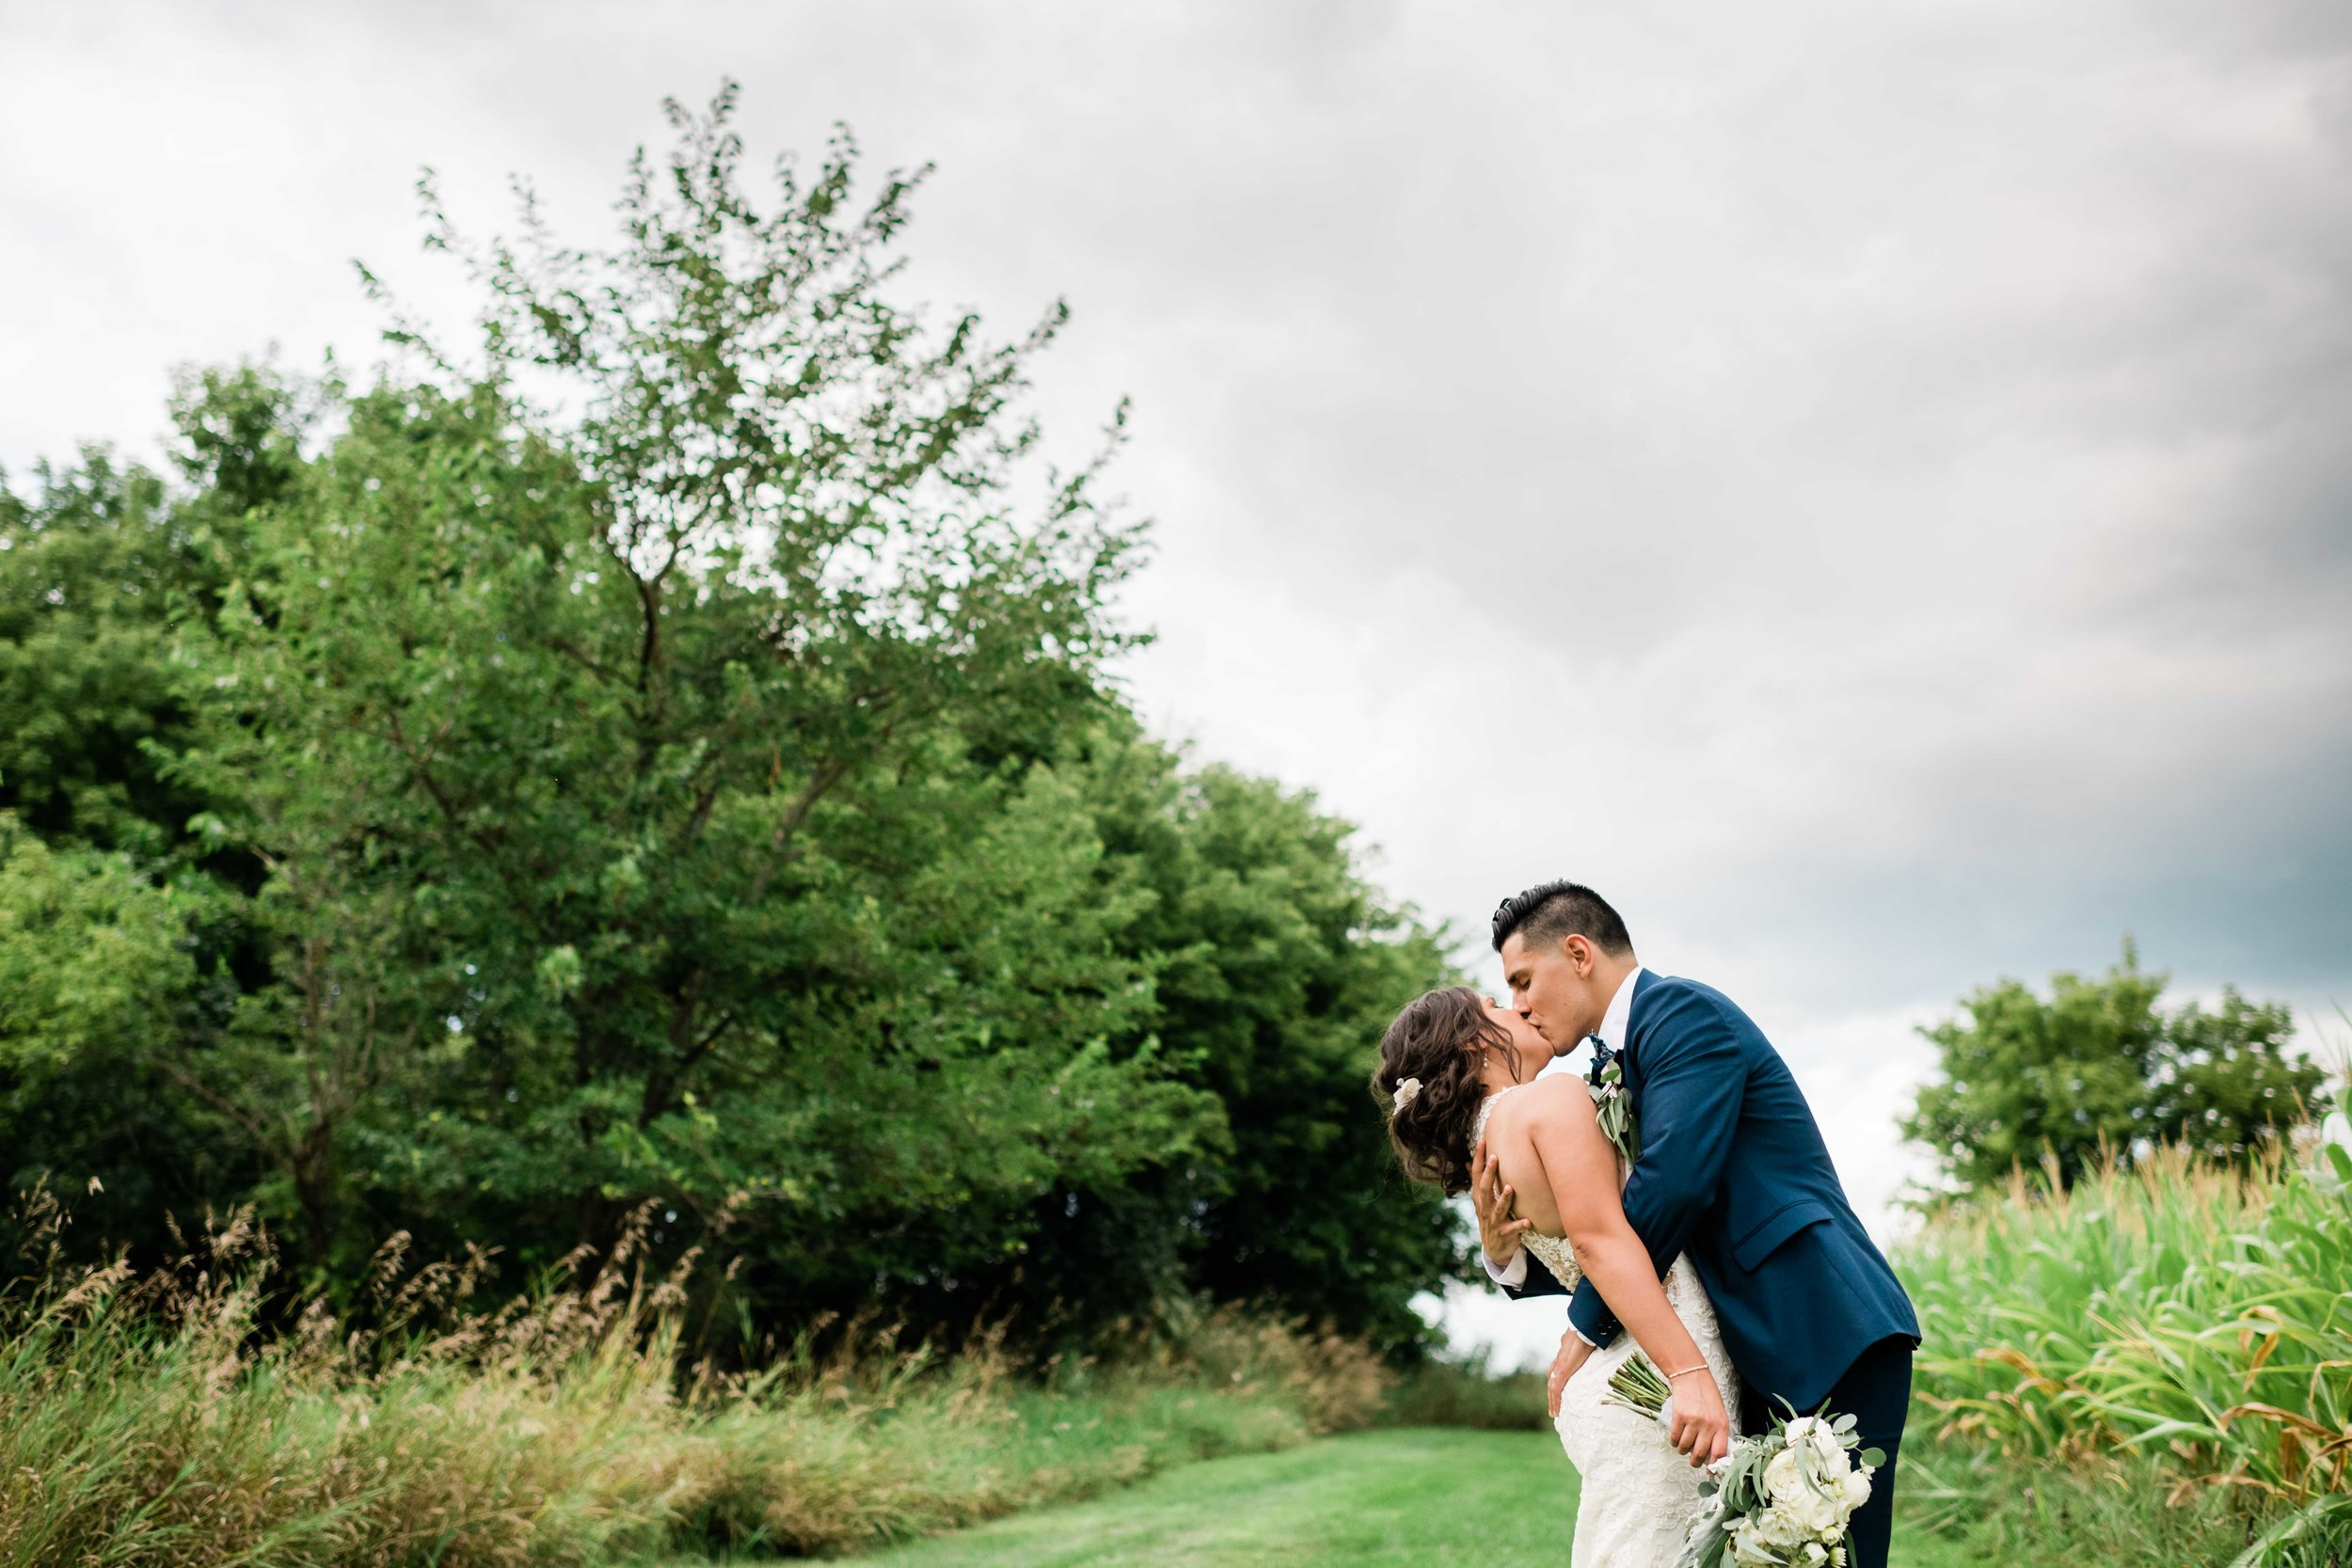 WEDDINGS - All wedding collections include a complimentary engagement session, complimentary travel within Wisconsin, an online gallery of professionally edited digital images, and a print release.